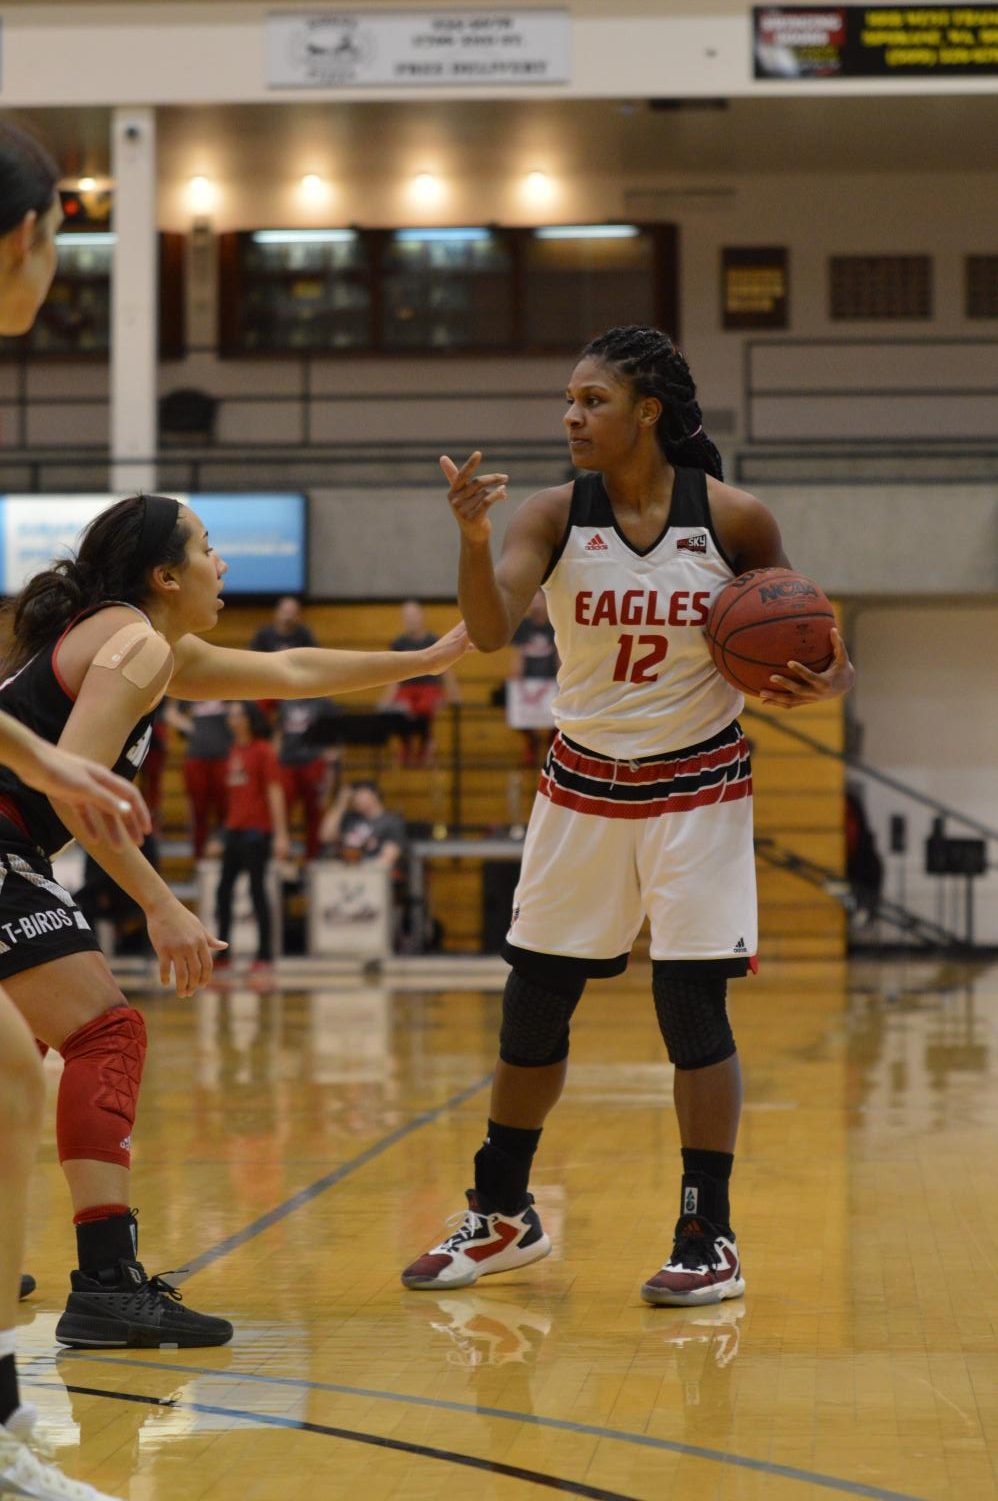 Senior guard Karpi Morrow guides the offense in EWU's 80-66 win over Southern Utah on Thursday. Morrow had a double-double with 12 points and 10 rebounds.